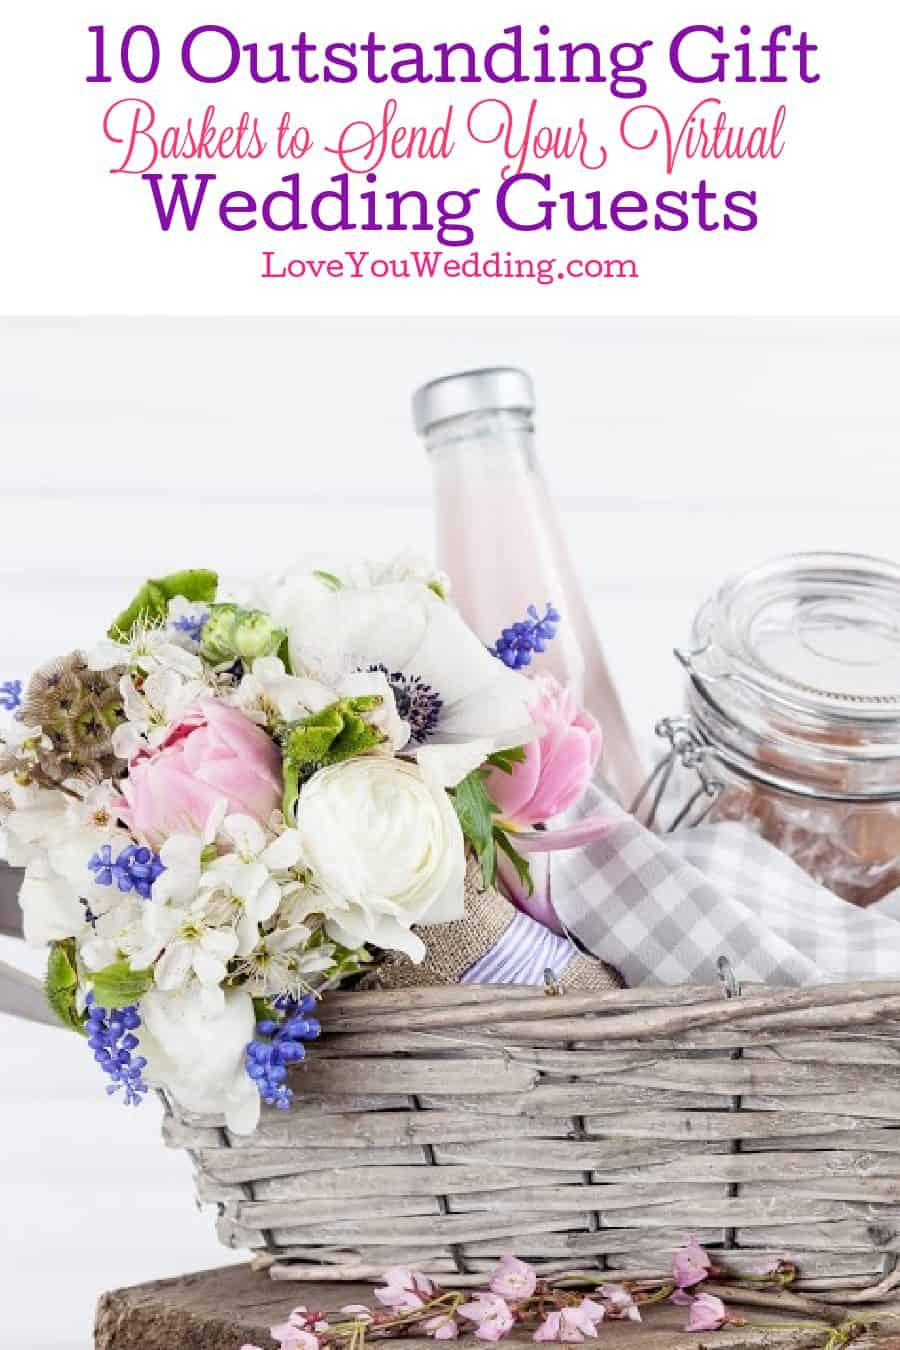 Looking for some outstanding gift baskets to send your virtual wedding guests? We've got you covered! Check out 10 ideas that your attendees will adore!